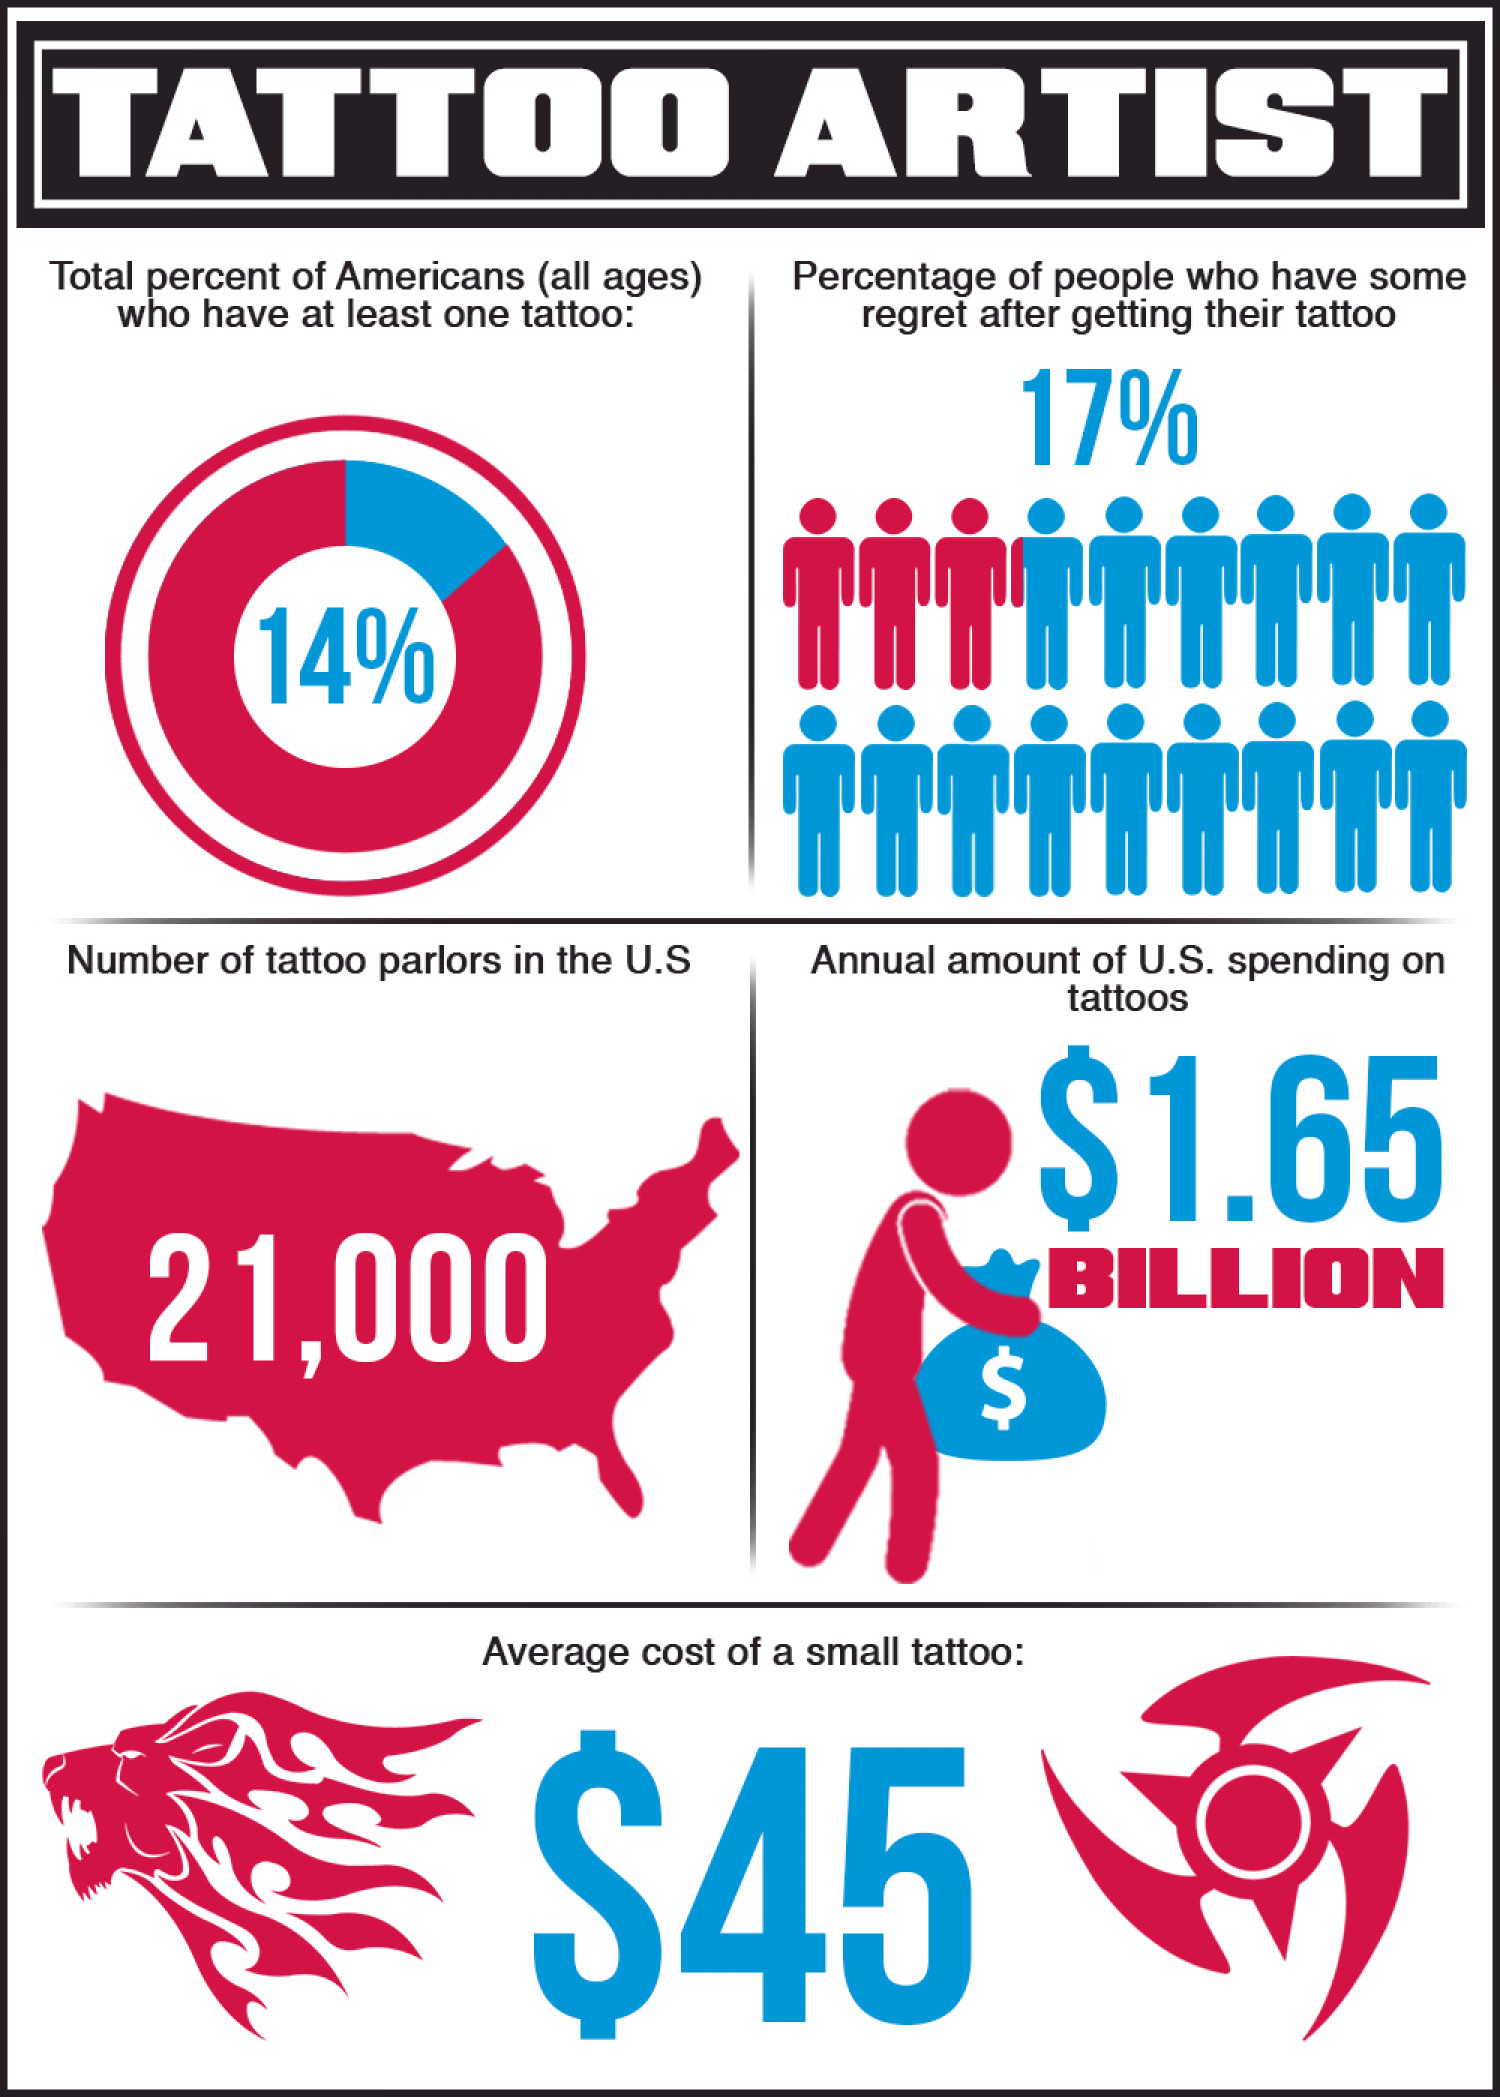 The Art of Tattoos in the United States Infographic